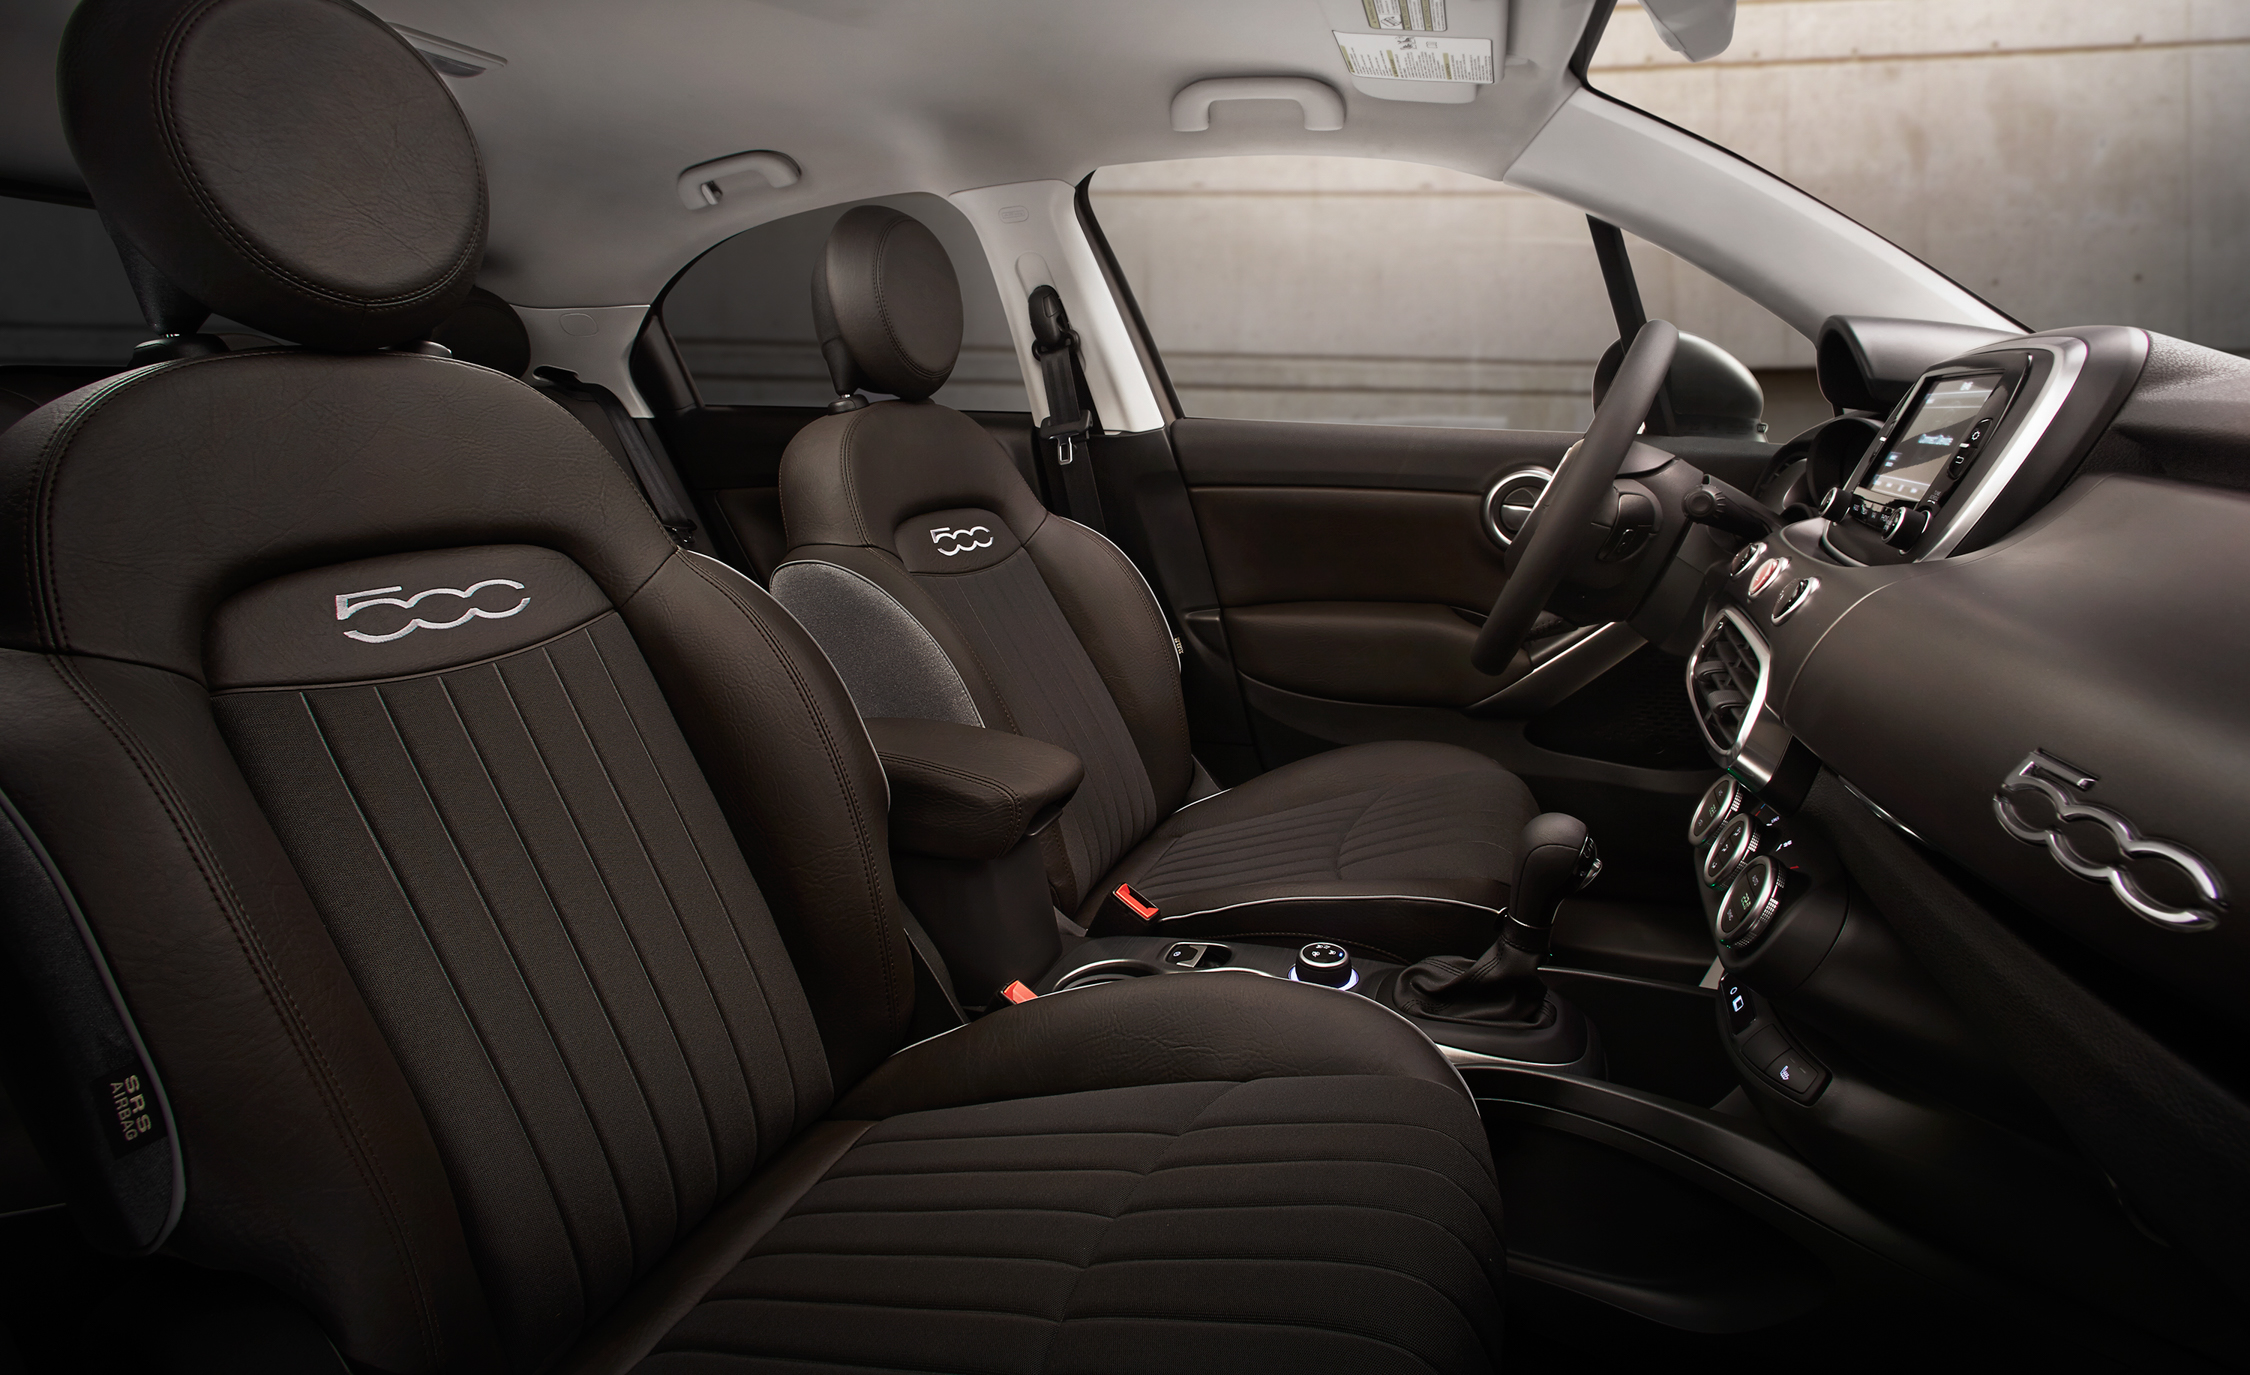 2016 Fiat 500X Lounge (Photo 12 of 66)